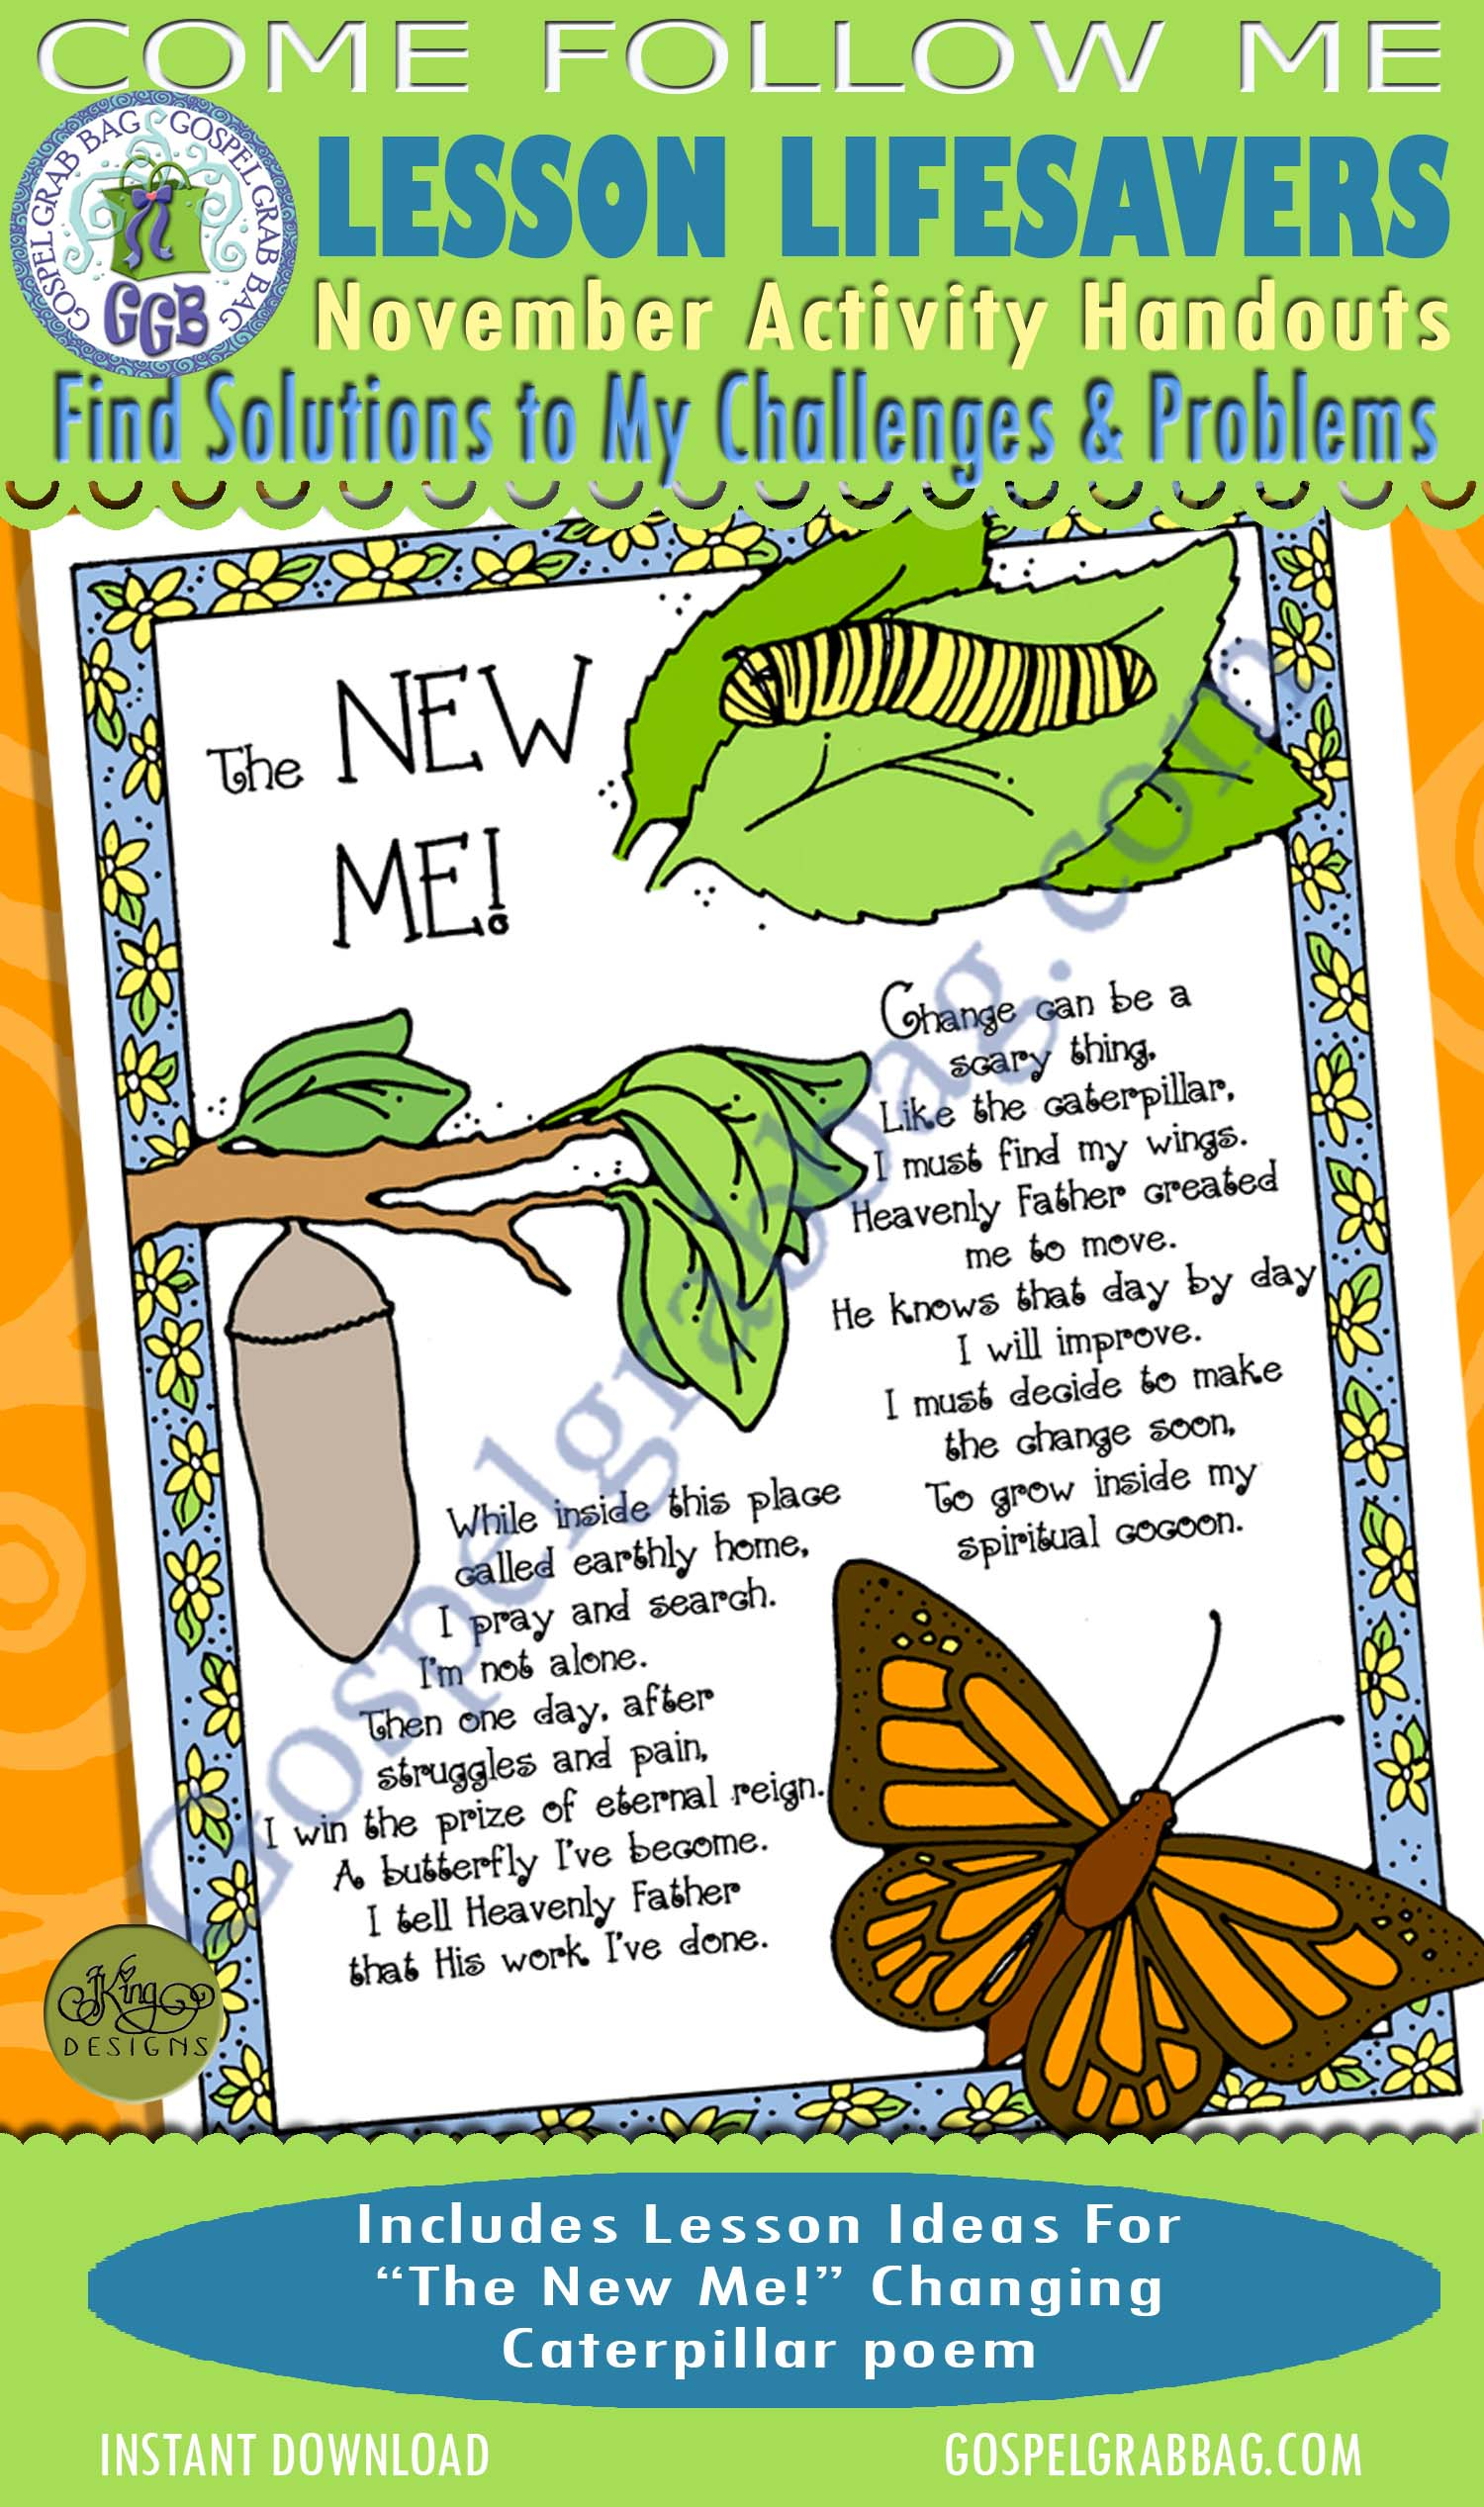 "$1.75 November Lesson 7 - Come Follow Me ""How can I find solutions to my challenges and problems?"" ACTIVITY: The New Me! Changing Caterpillar poem, butterflies, GospelGrabBag.com"